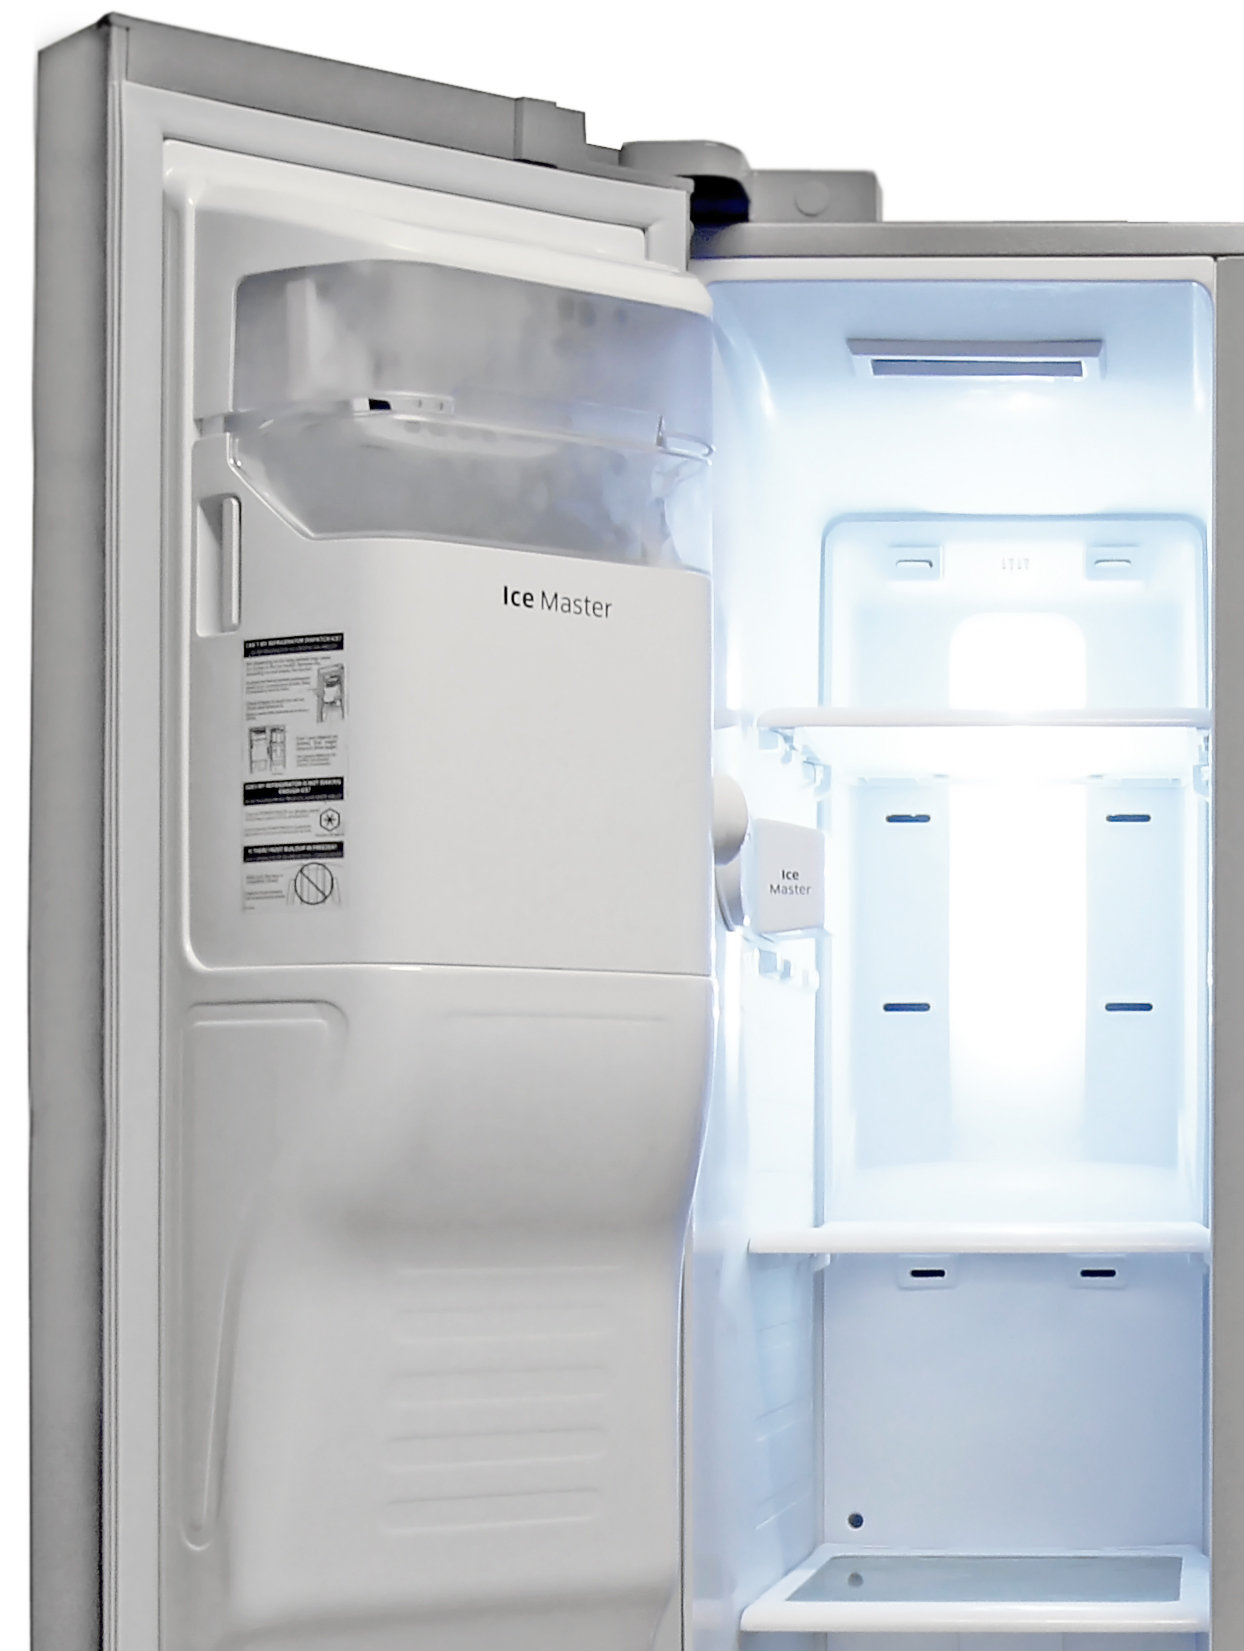 The Samsung RS25H5121SR's icemaker is fairly large, but takes up no space in the main compartment.